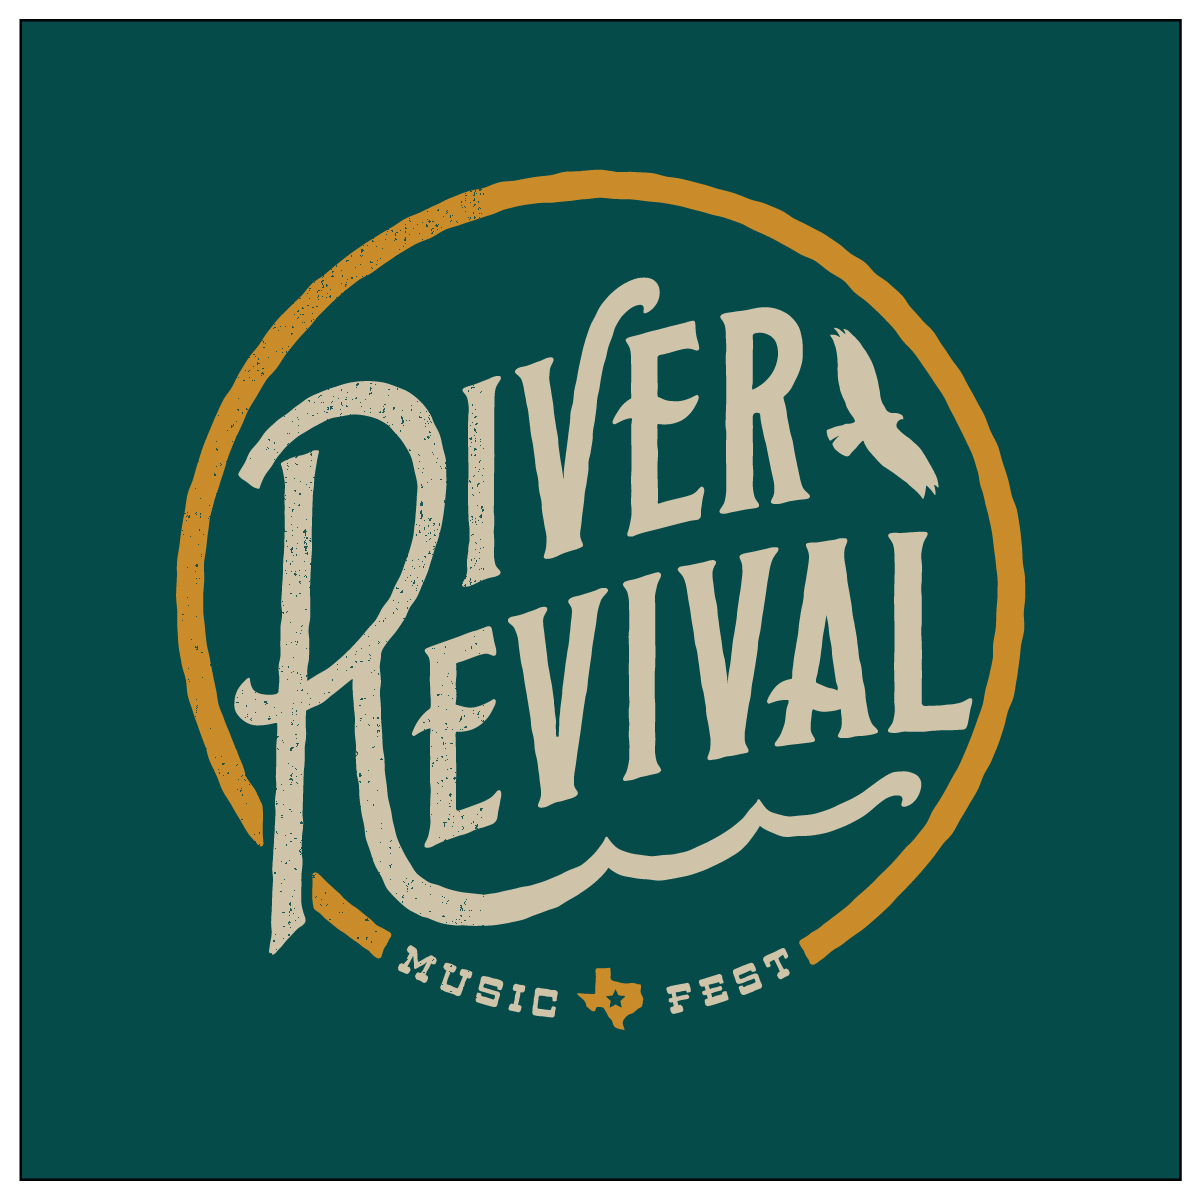 River Revival Music Festival